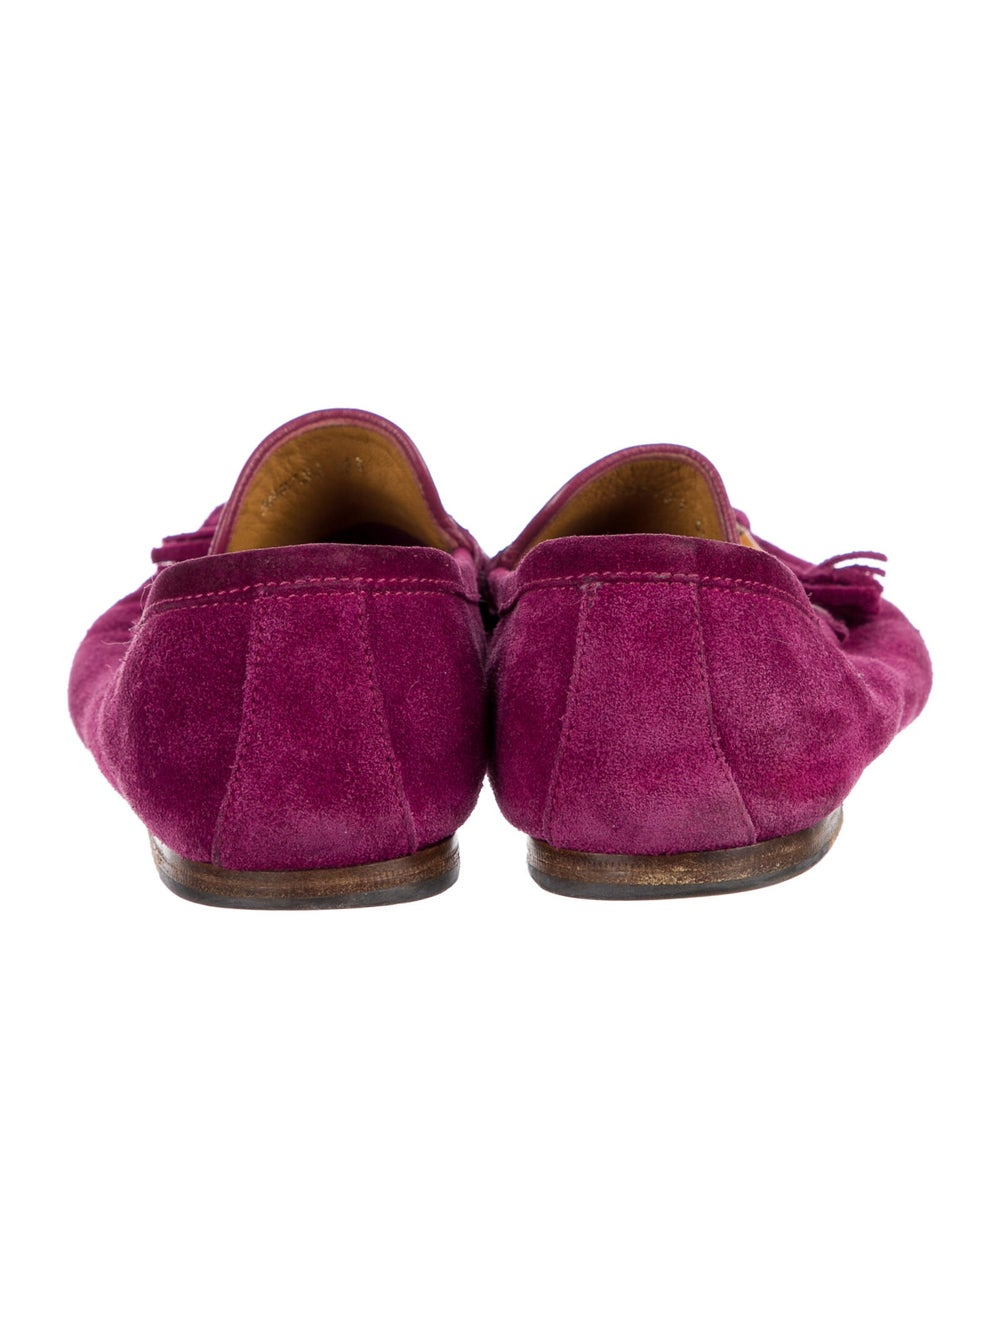 Gucci Suede Tassel Accents Loafers Purple - image 4